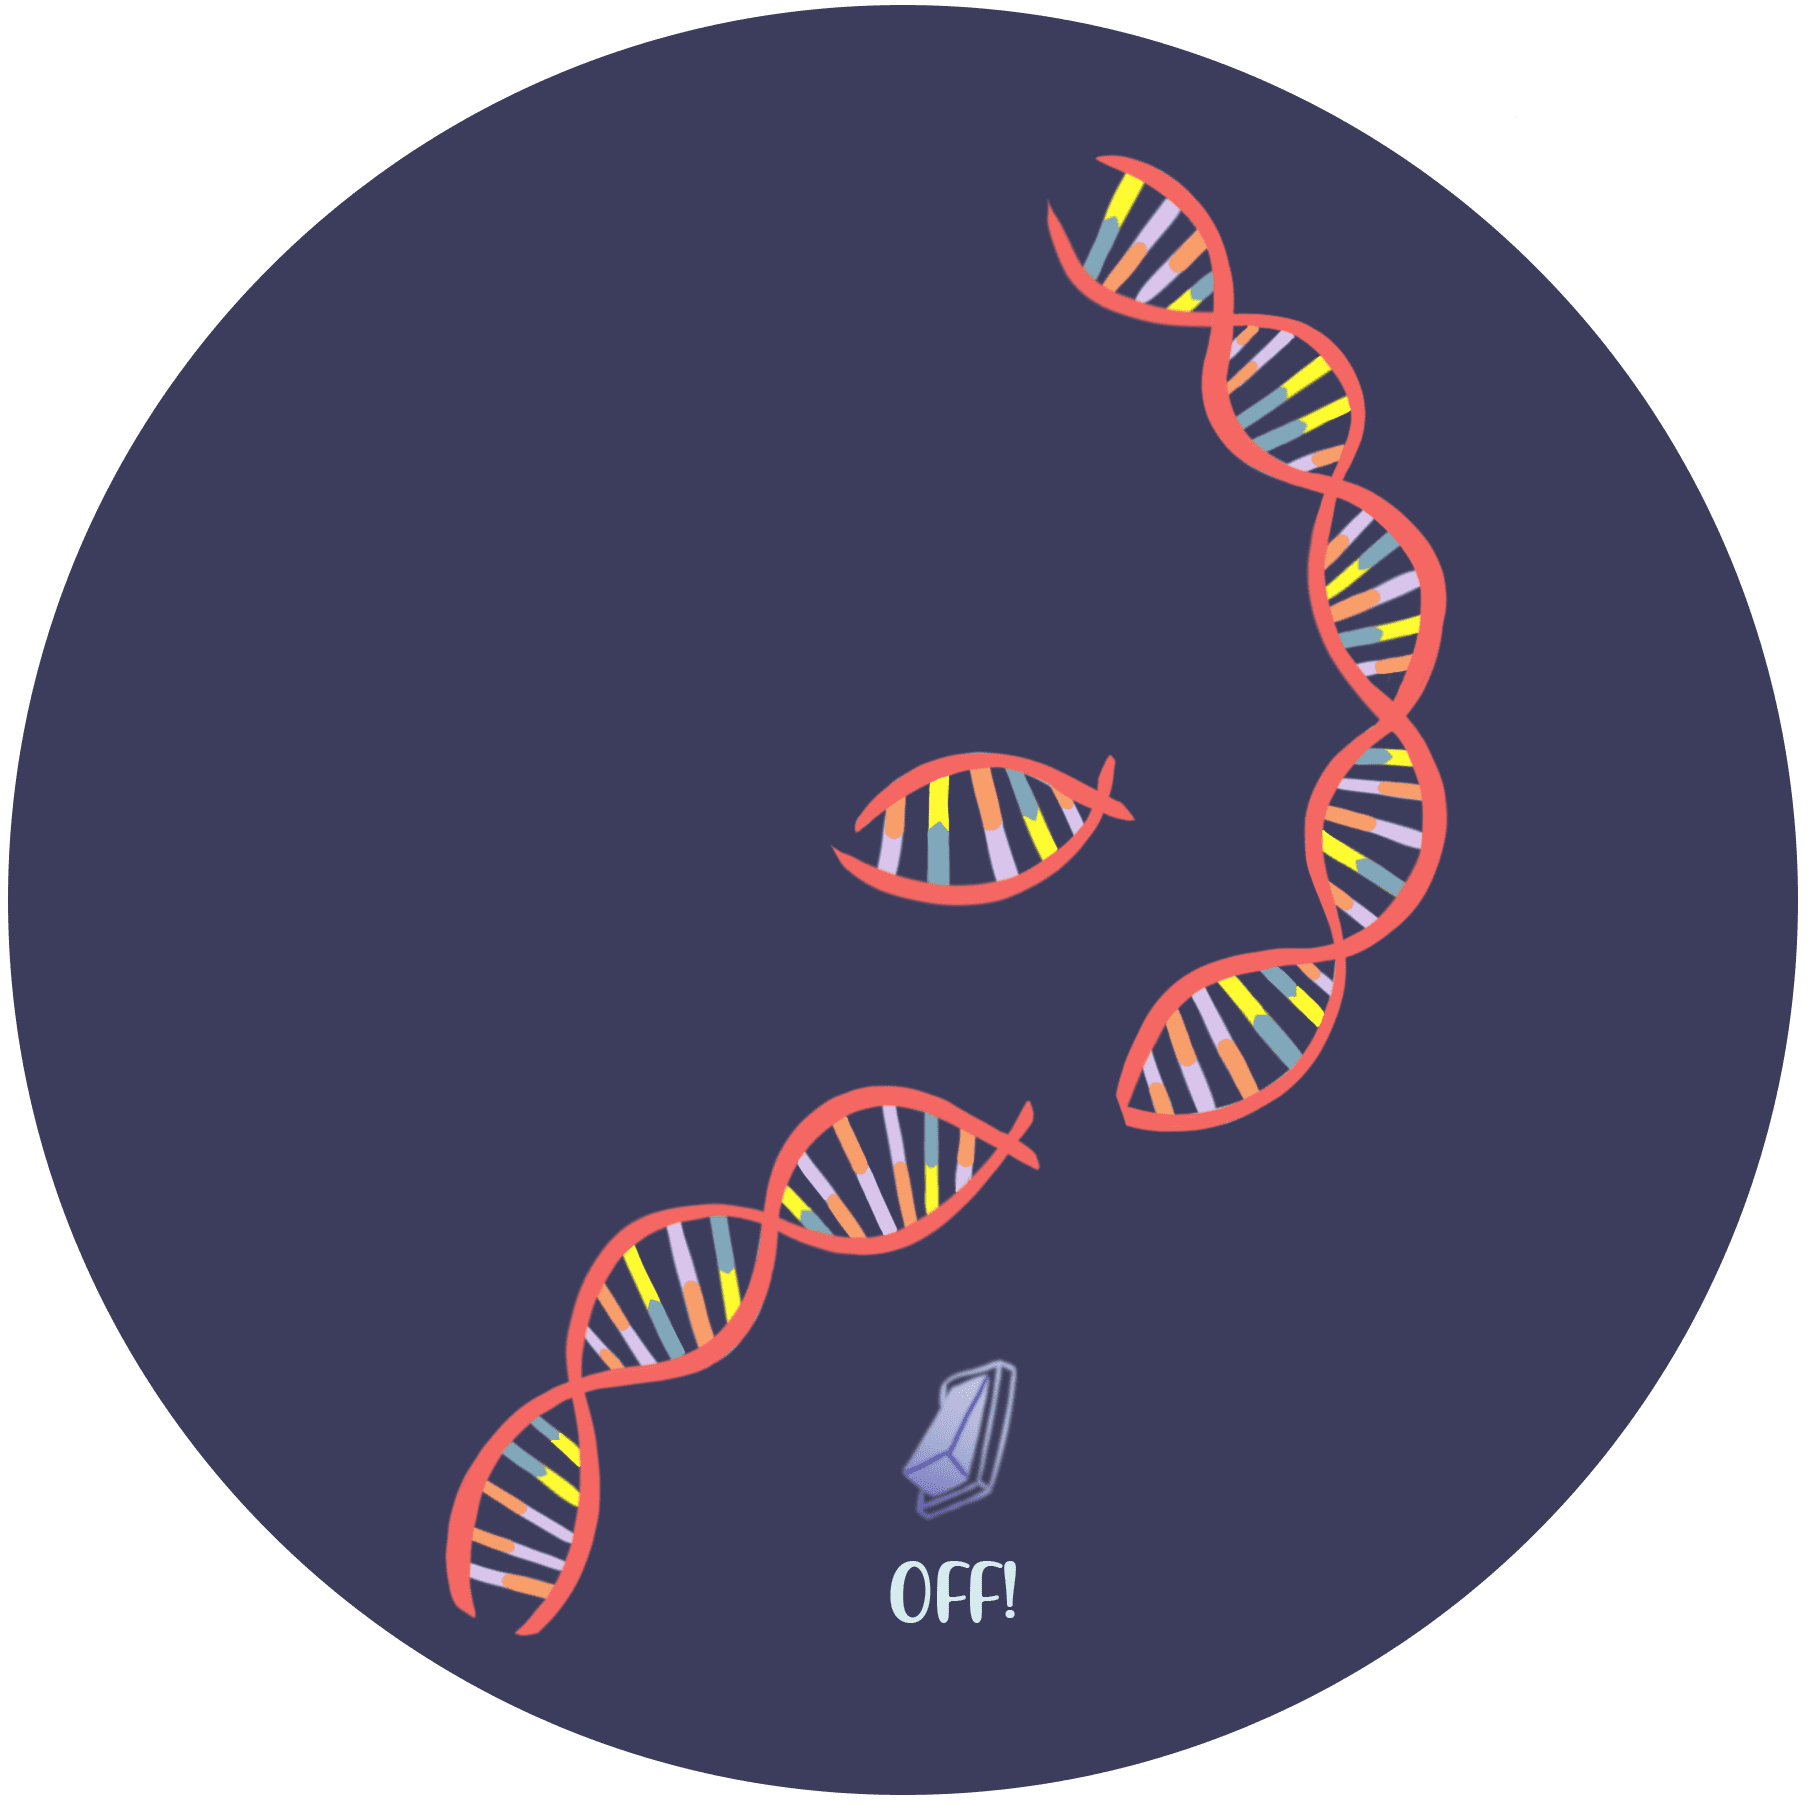 """Illustration of DNA with a light switch that says """"OFF!"""""""